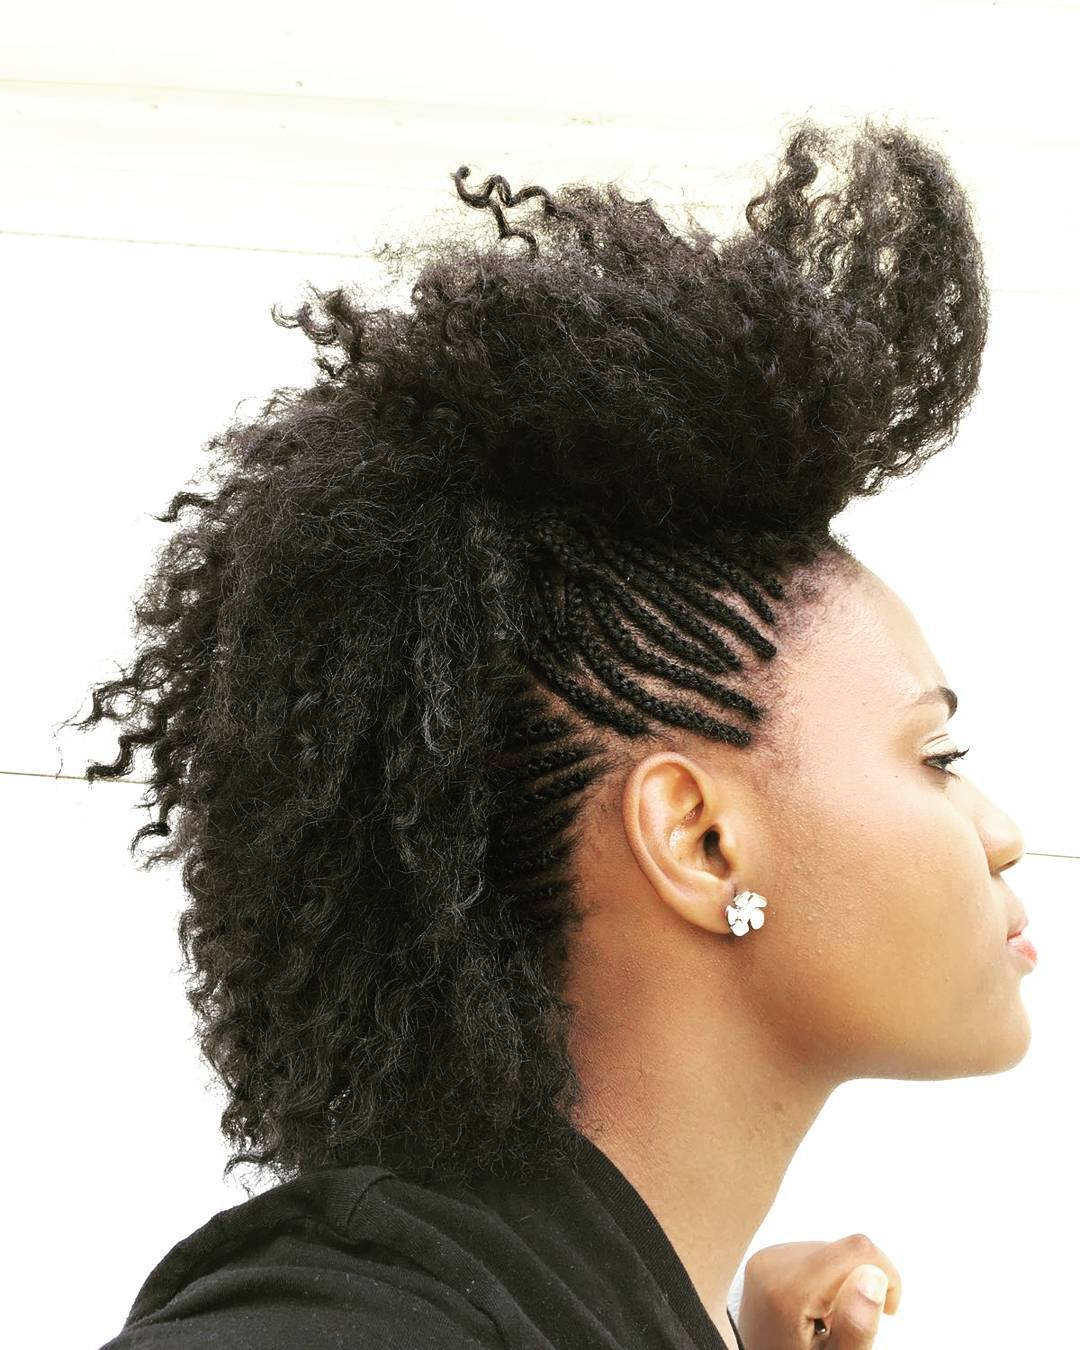 Mohawk Braids: 12 Braided Mohawk Hairstyles That Get Attention For Most Popular Mohawk Hairstyles With Braided Bantu Knots (View 10 of 20)